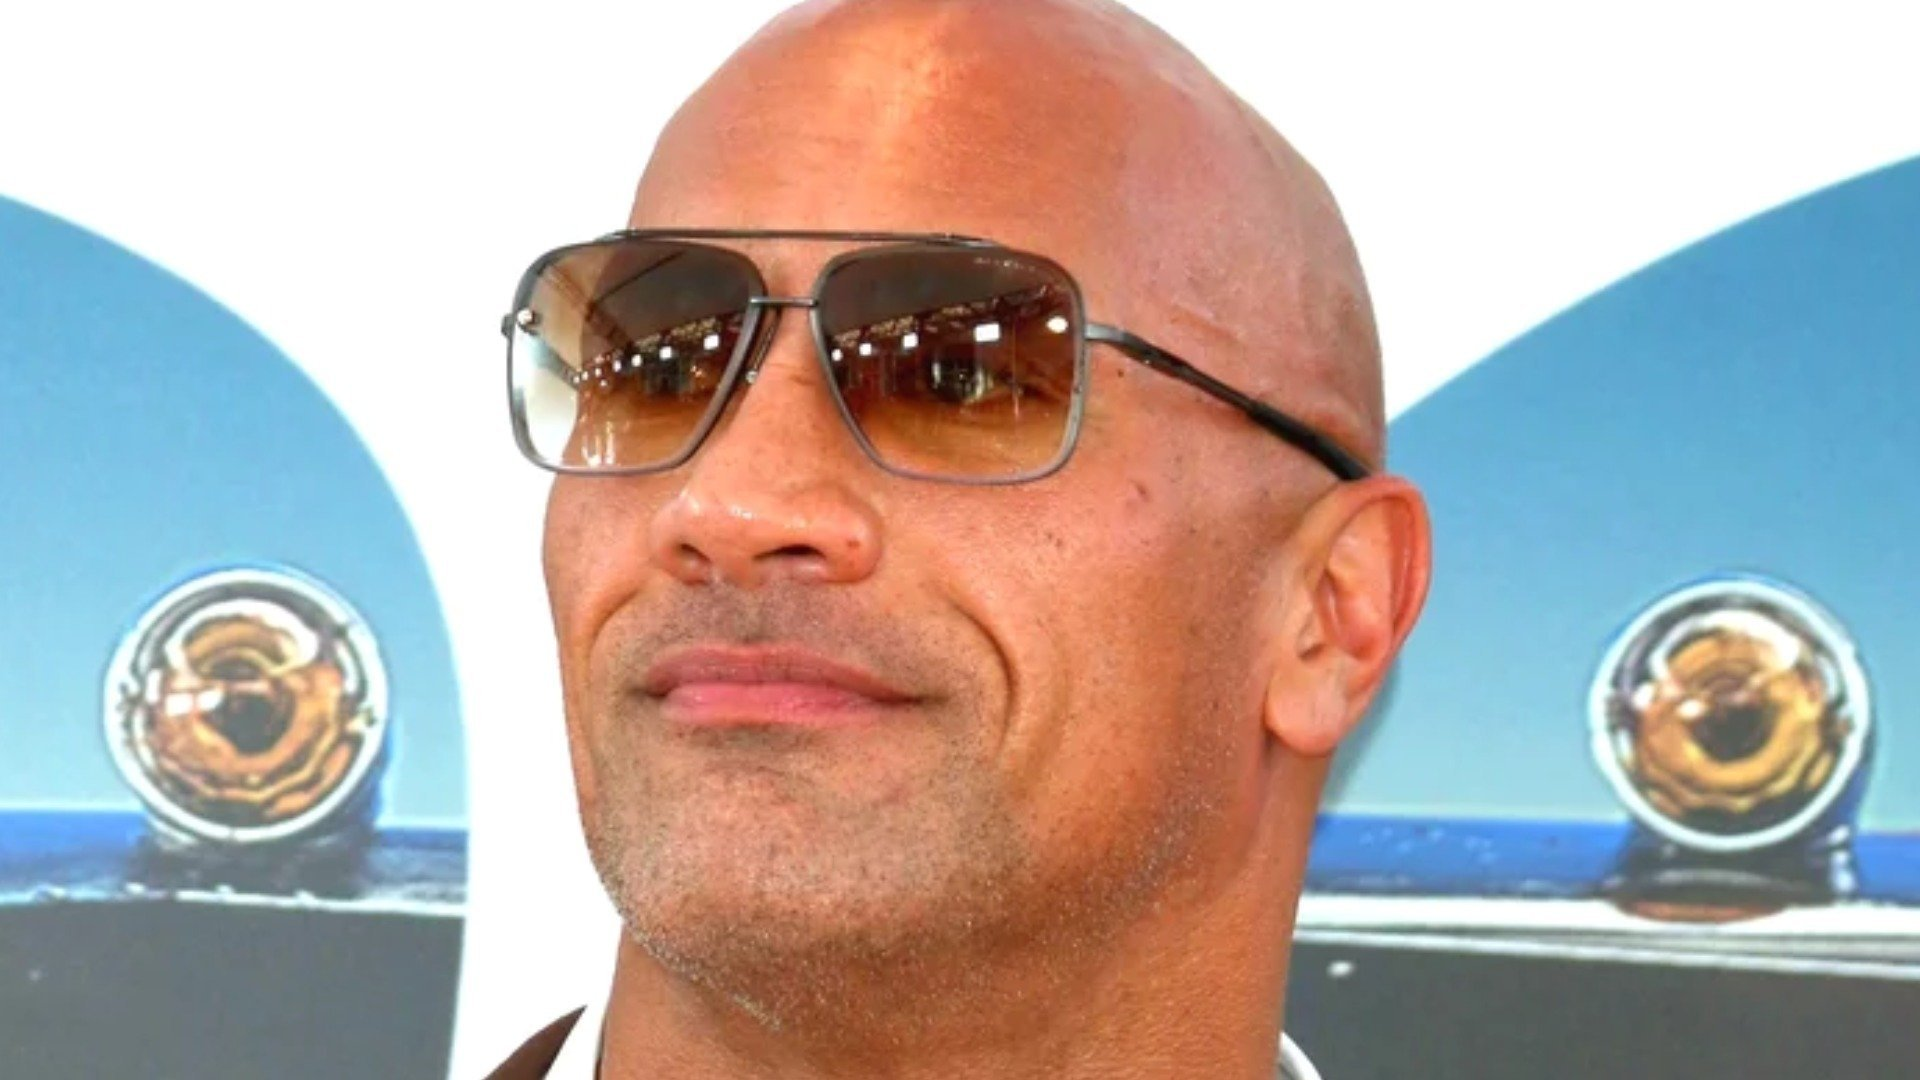 The Rock Just Dropped A Bomb About His Fast & Furious Future